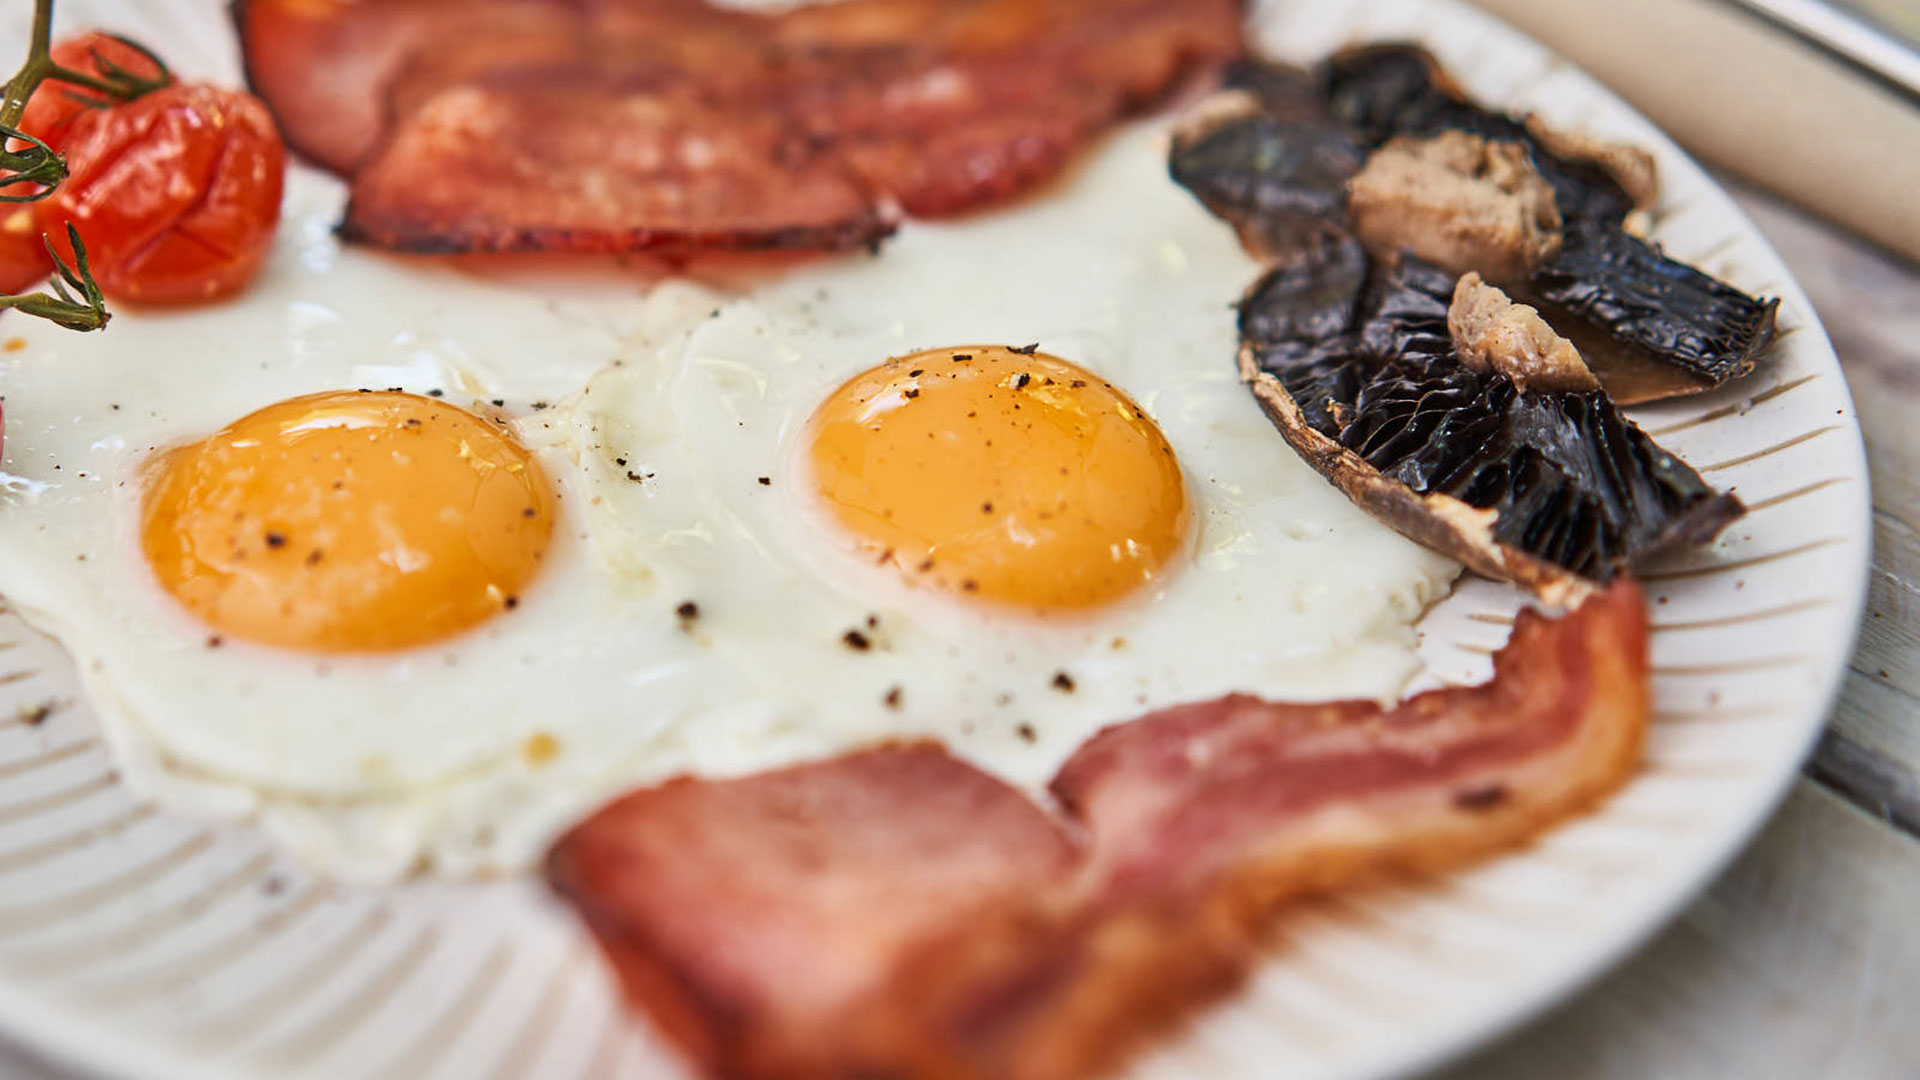 Two Fried eggs, bacon, mushroom on a plate, close up